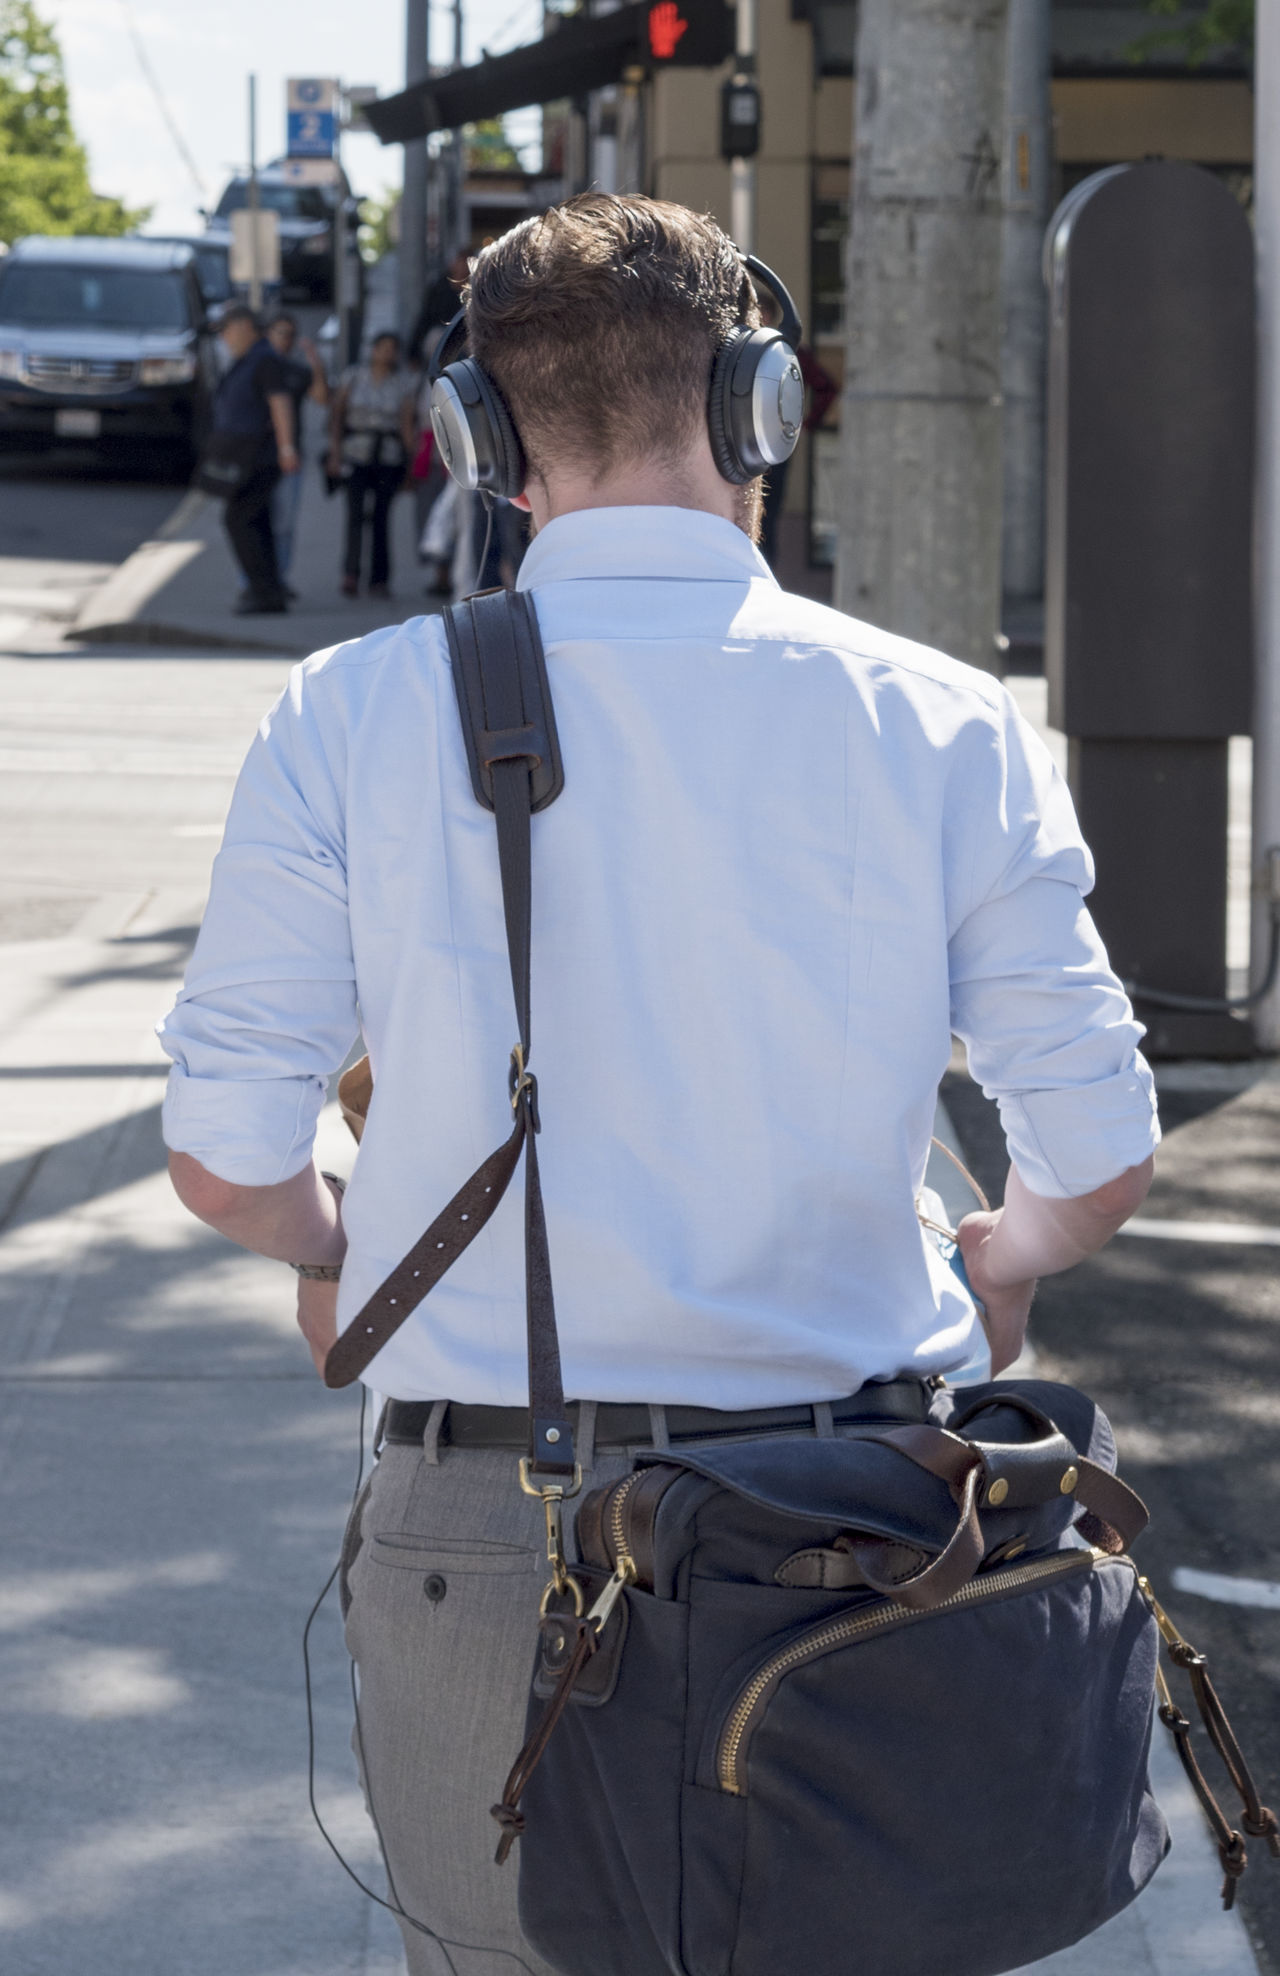 Businessman on the go in the city wearing headphones carrying shoulder bag Architecture Belt  Businessman Commute Day Headphones Holding Leisure Activity Lifestyles Men Occupation One Person Outdoors People Real People Rear View Rear View Shoulder Bag Standing Technology Three Quarter Length Urban Walking Wireless Technology Young Adult